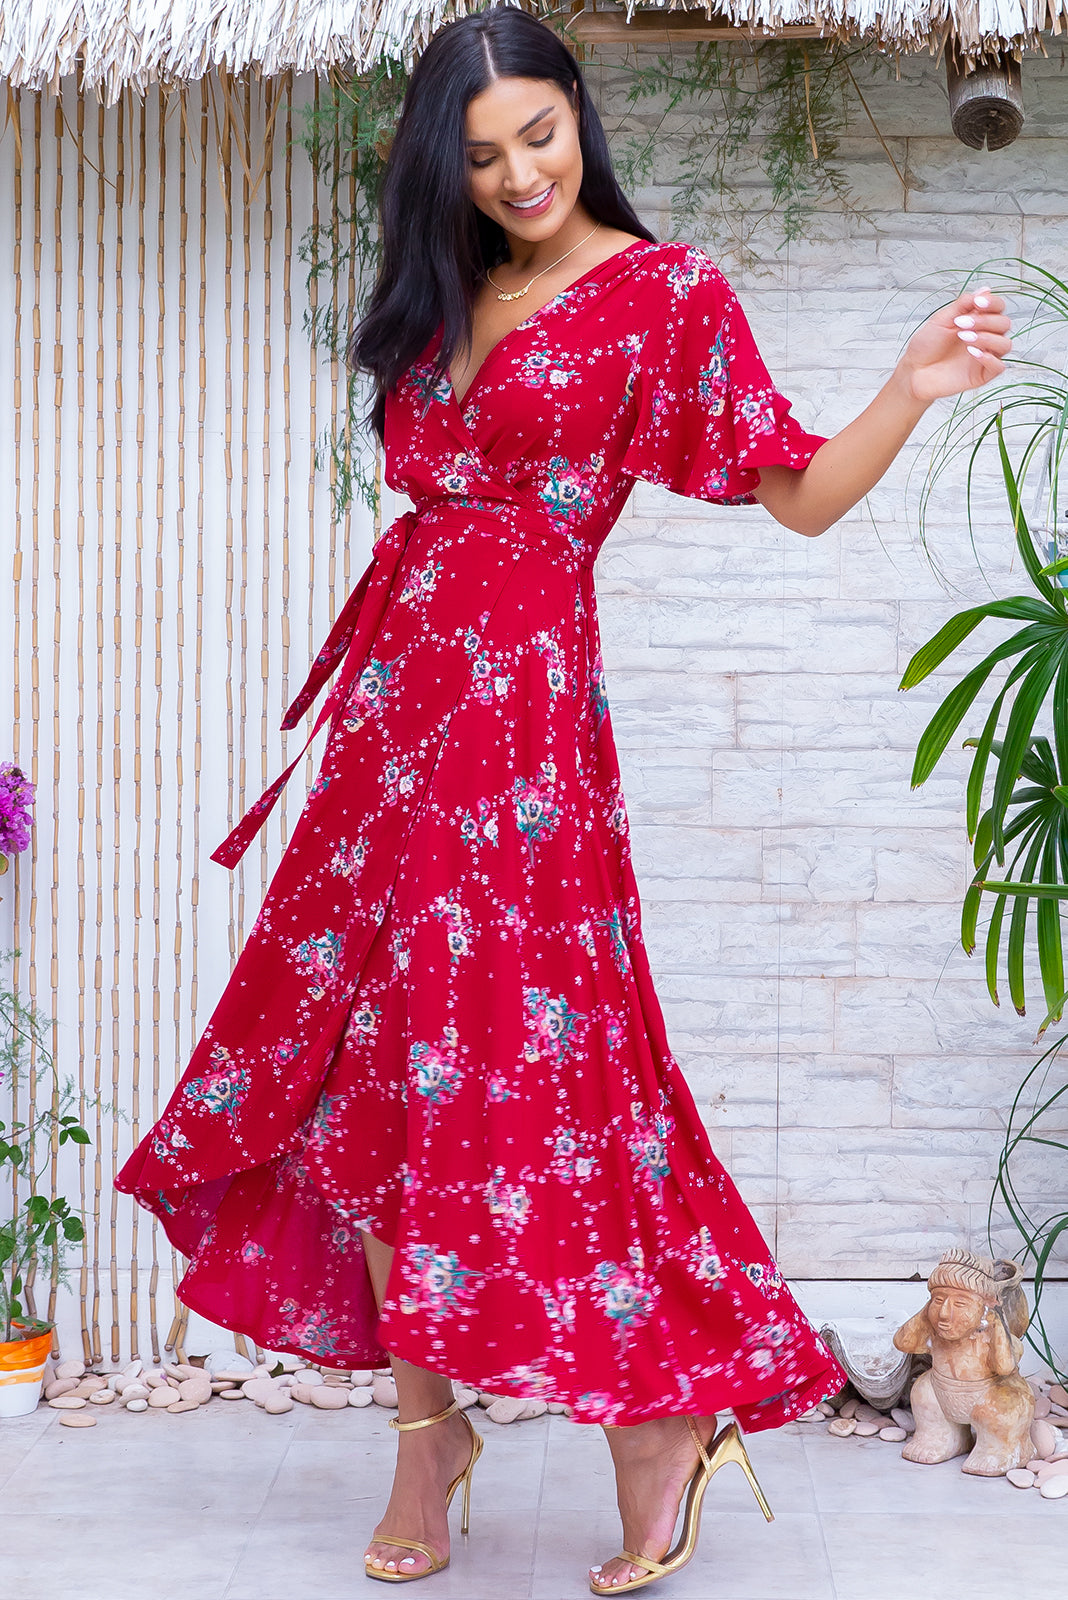 The Petal Red Pansy Maxi Wrap Dress features plunging neckline, midi length at front, maxi length at back, ties at waist., easticised waistband at back, floaty petal sleeves, side pockets and 100% rayon in bold red base with sweet floral print.